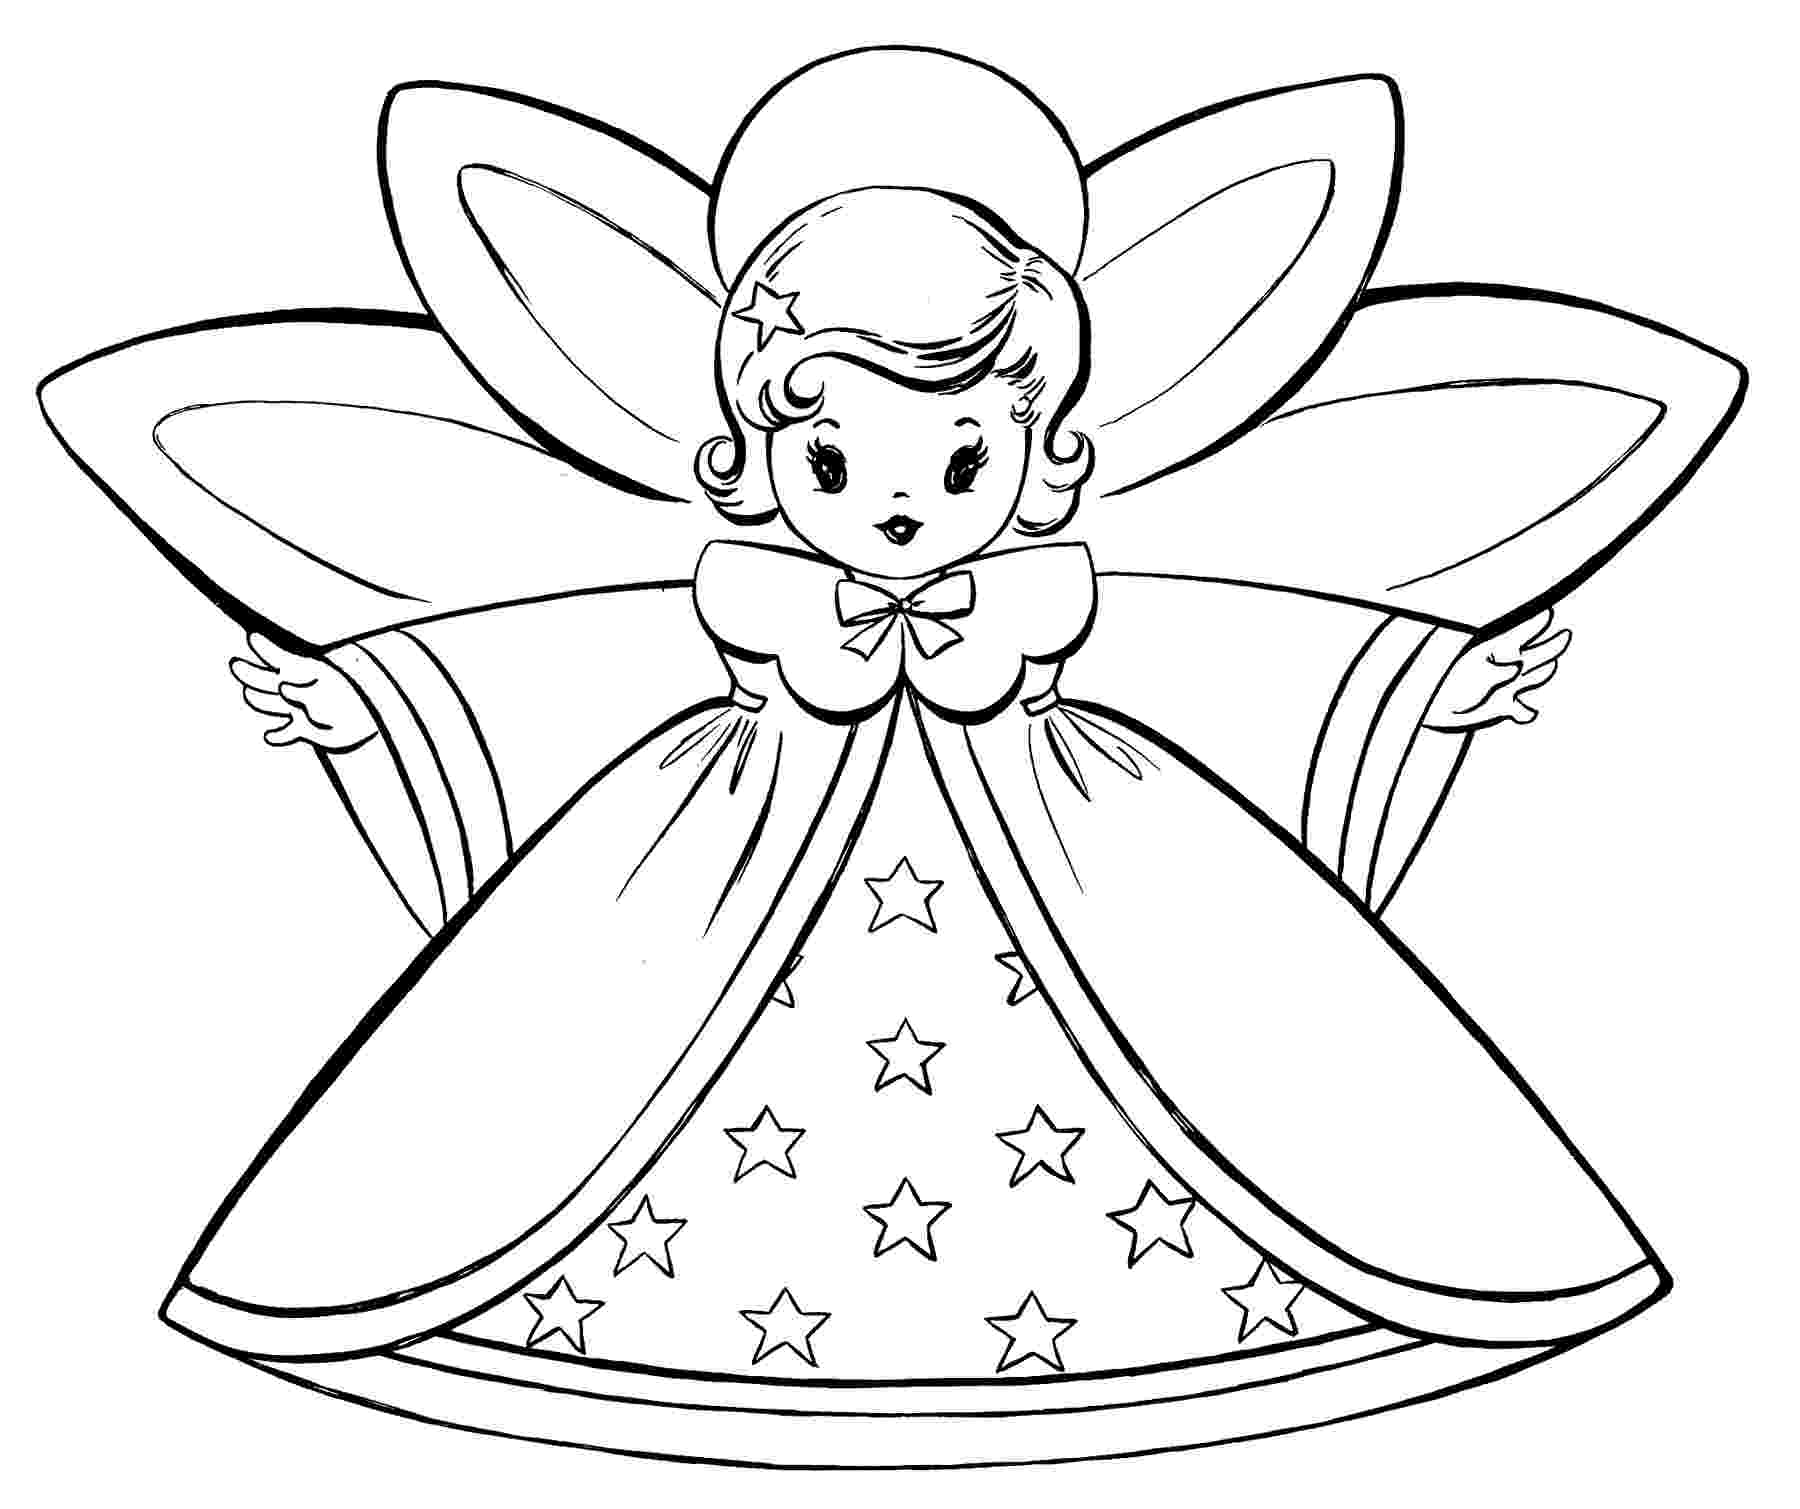 christmas angel colouring pages merry christmas crafting the word of god colouring pages christmas angel